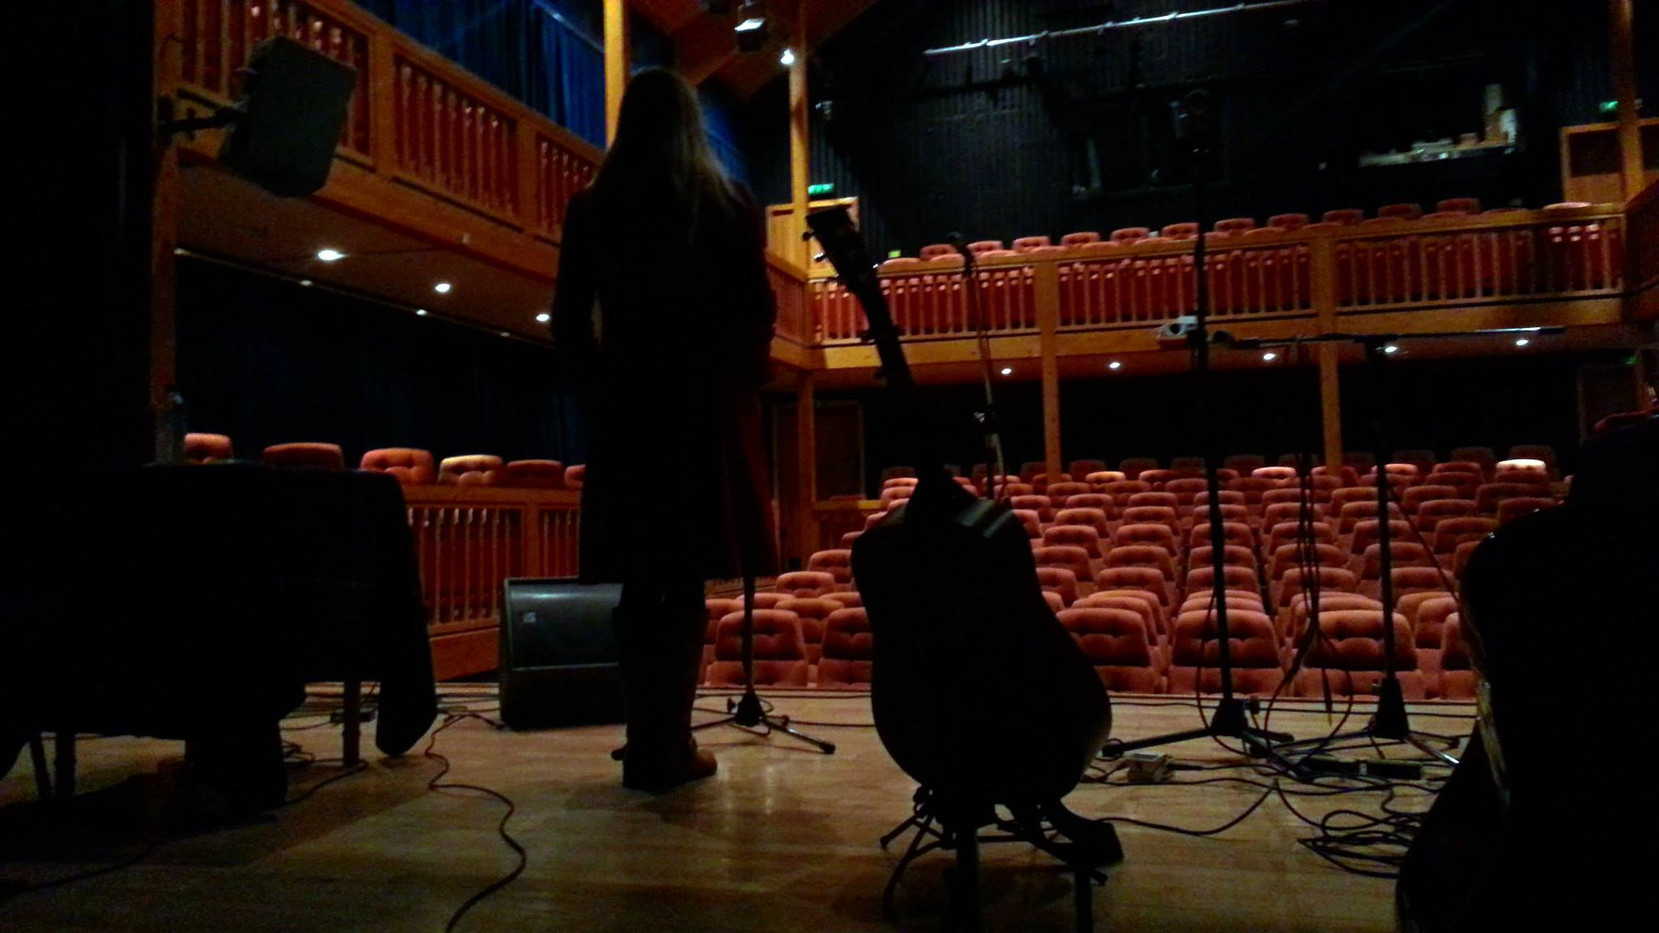 Setting up pre-gig at Aros, Isle of Skye